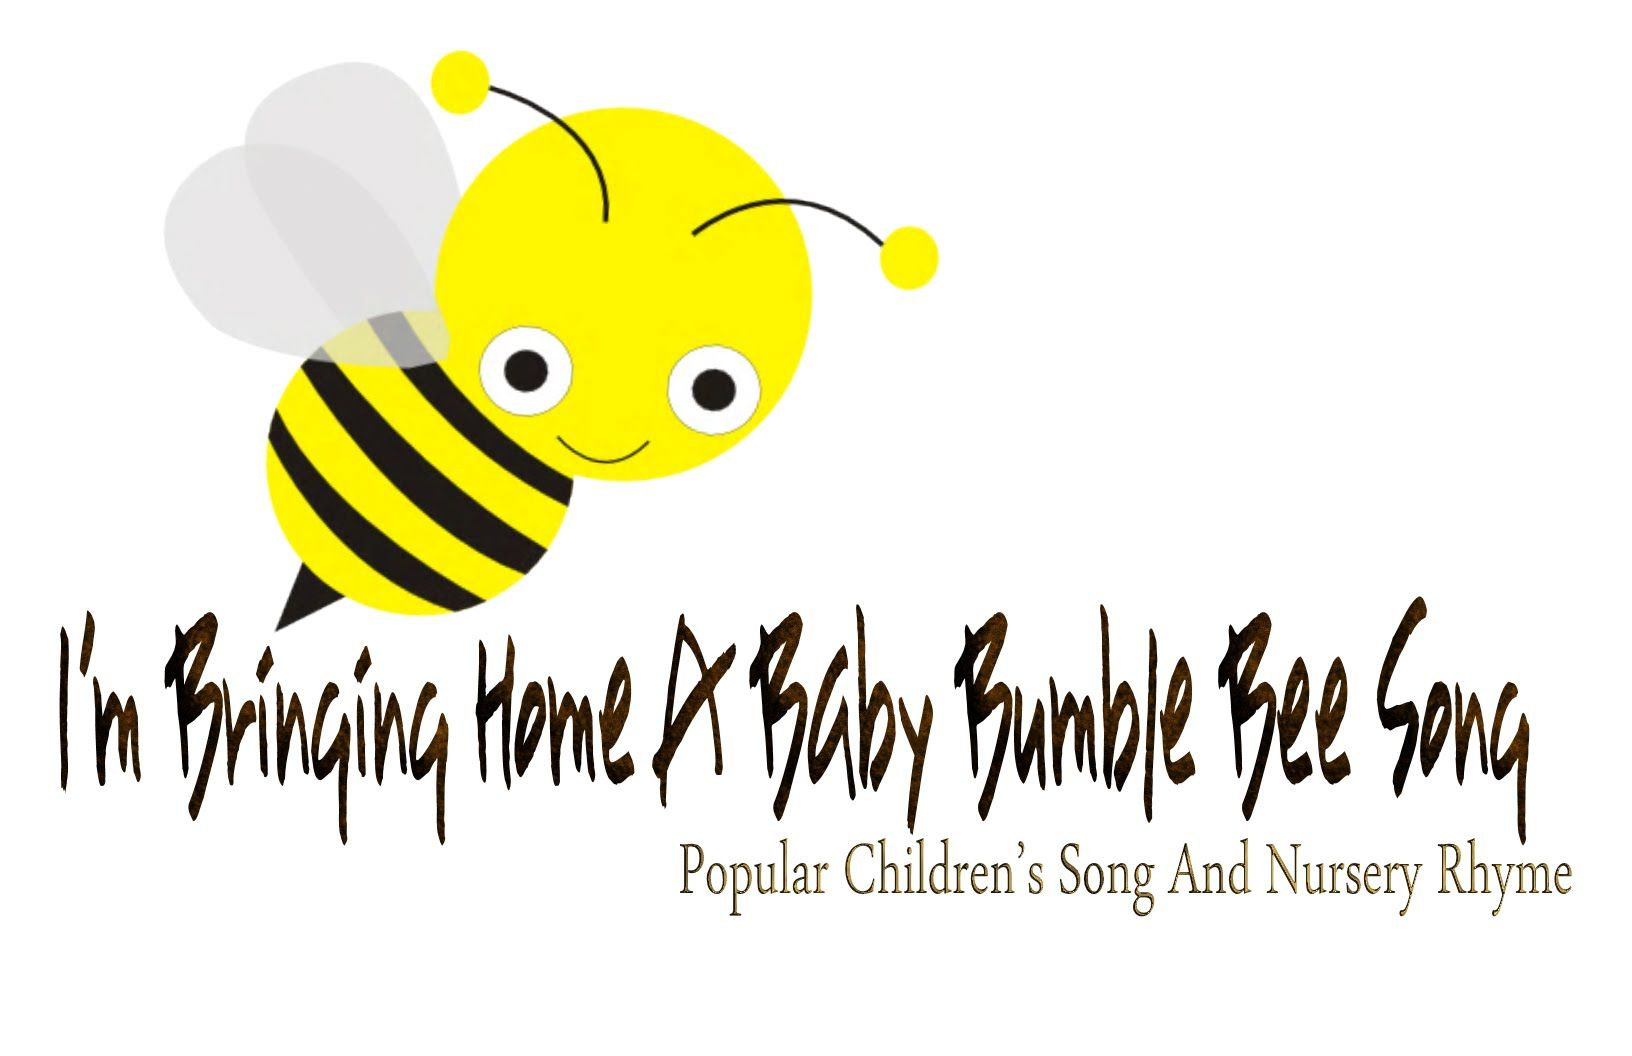 I M Bringing Home A Baby Bumble Bee Children S Sing Along And Piano Version Baby Bumble Bee Song Baby Bumble Bee Bumble Bee